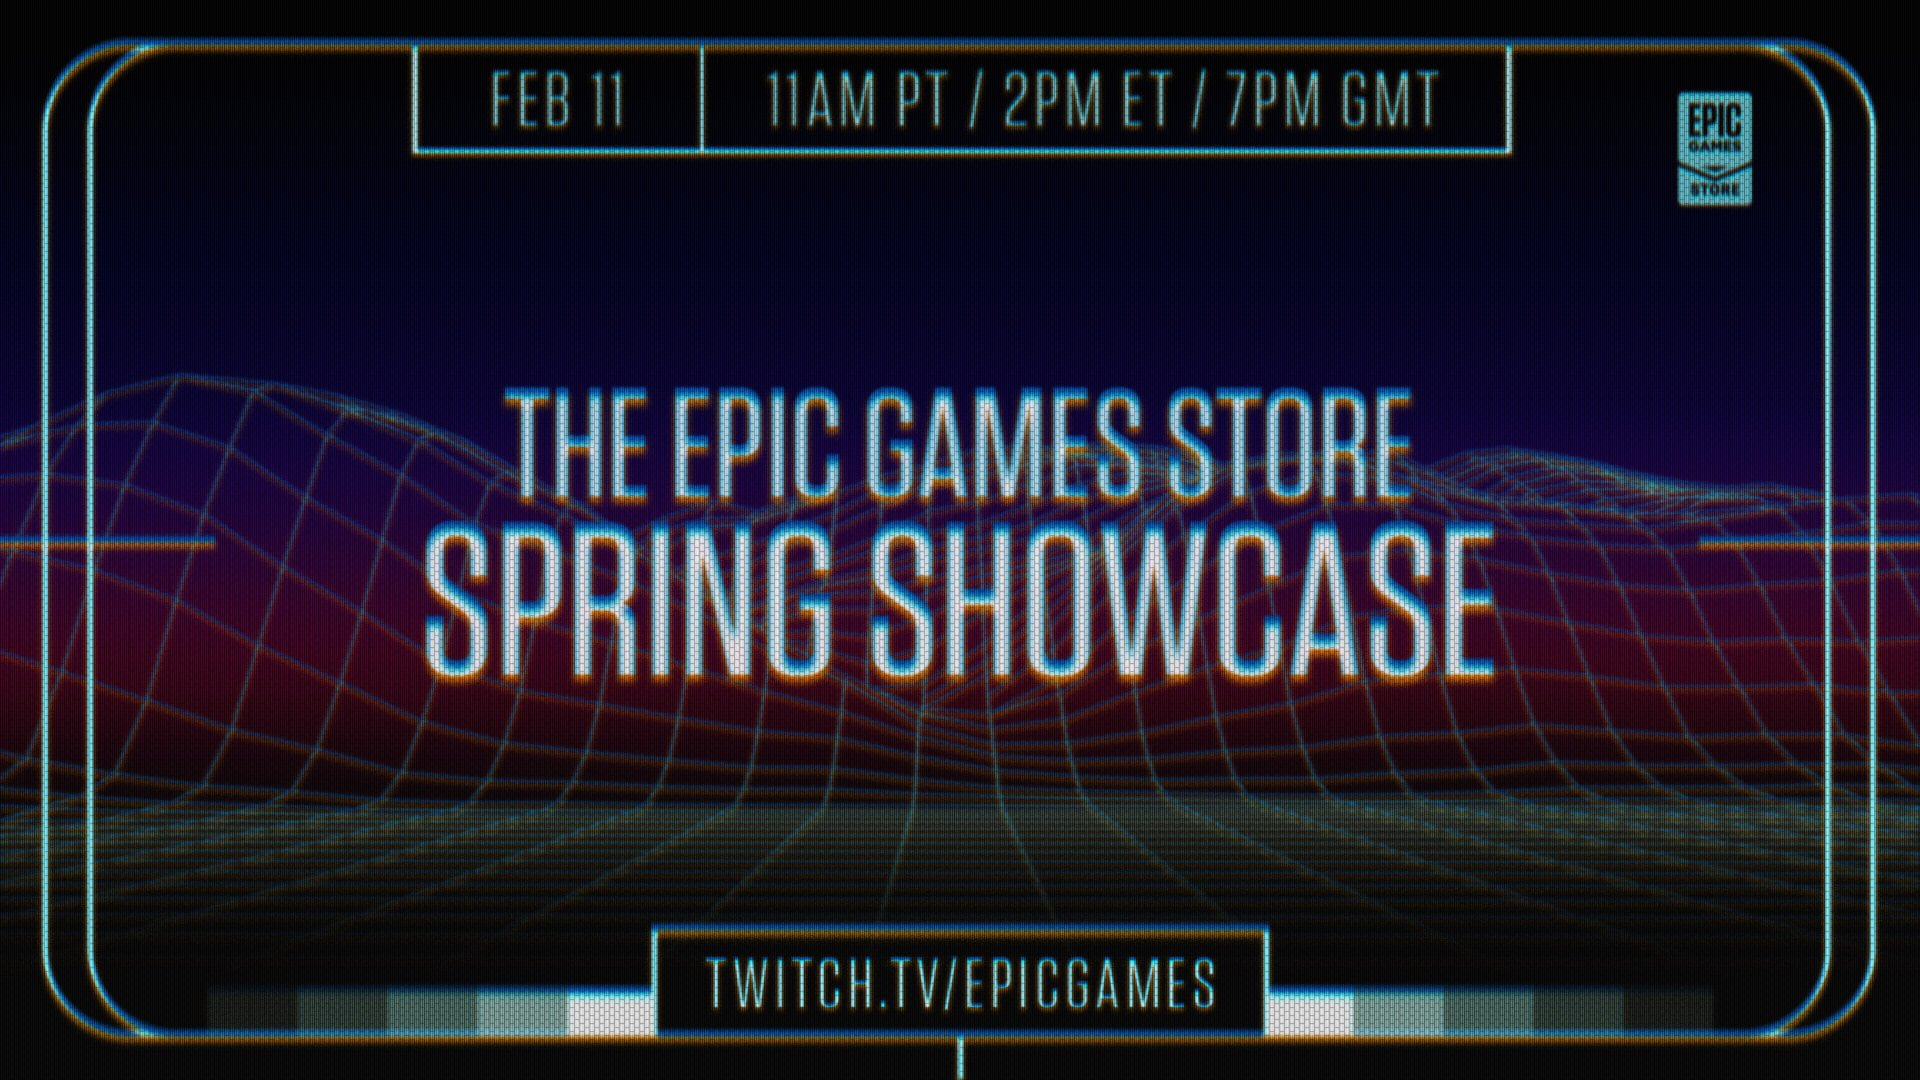 The Epic Games Store is leaning even more into exclusives and there's a Spring Showcase this week screenshot